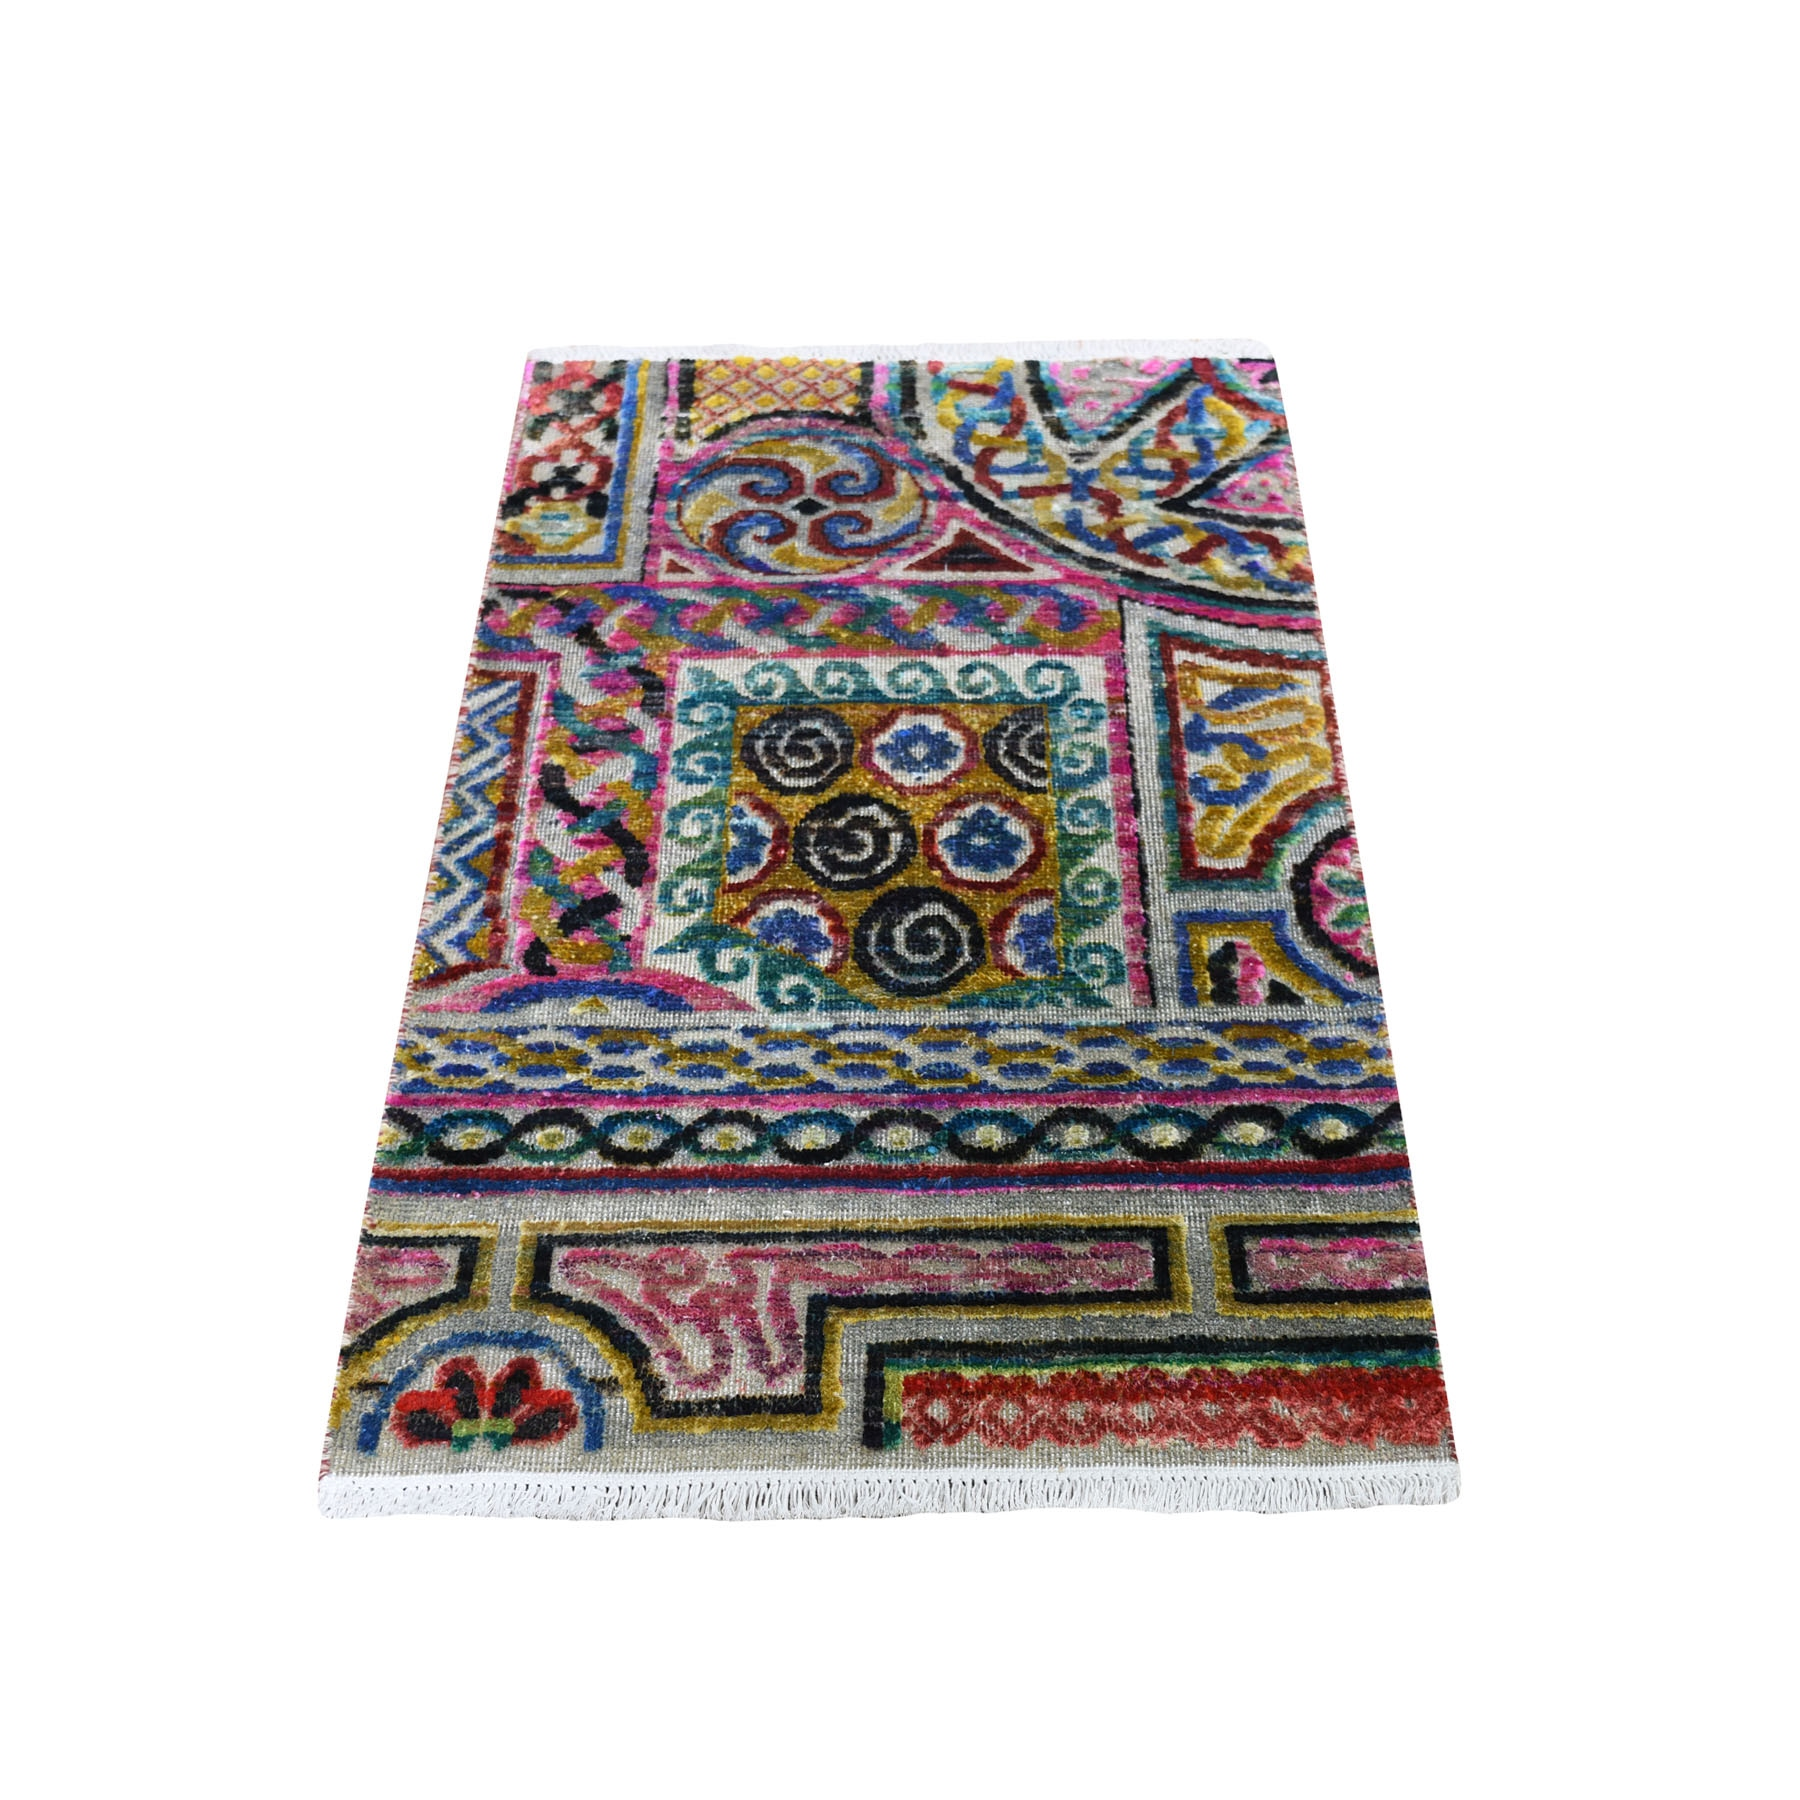 wool and silk rugs LUV422622